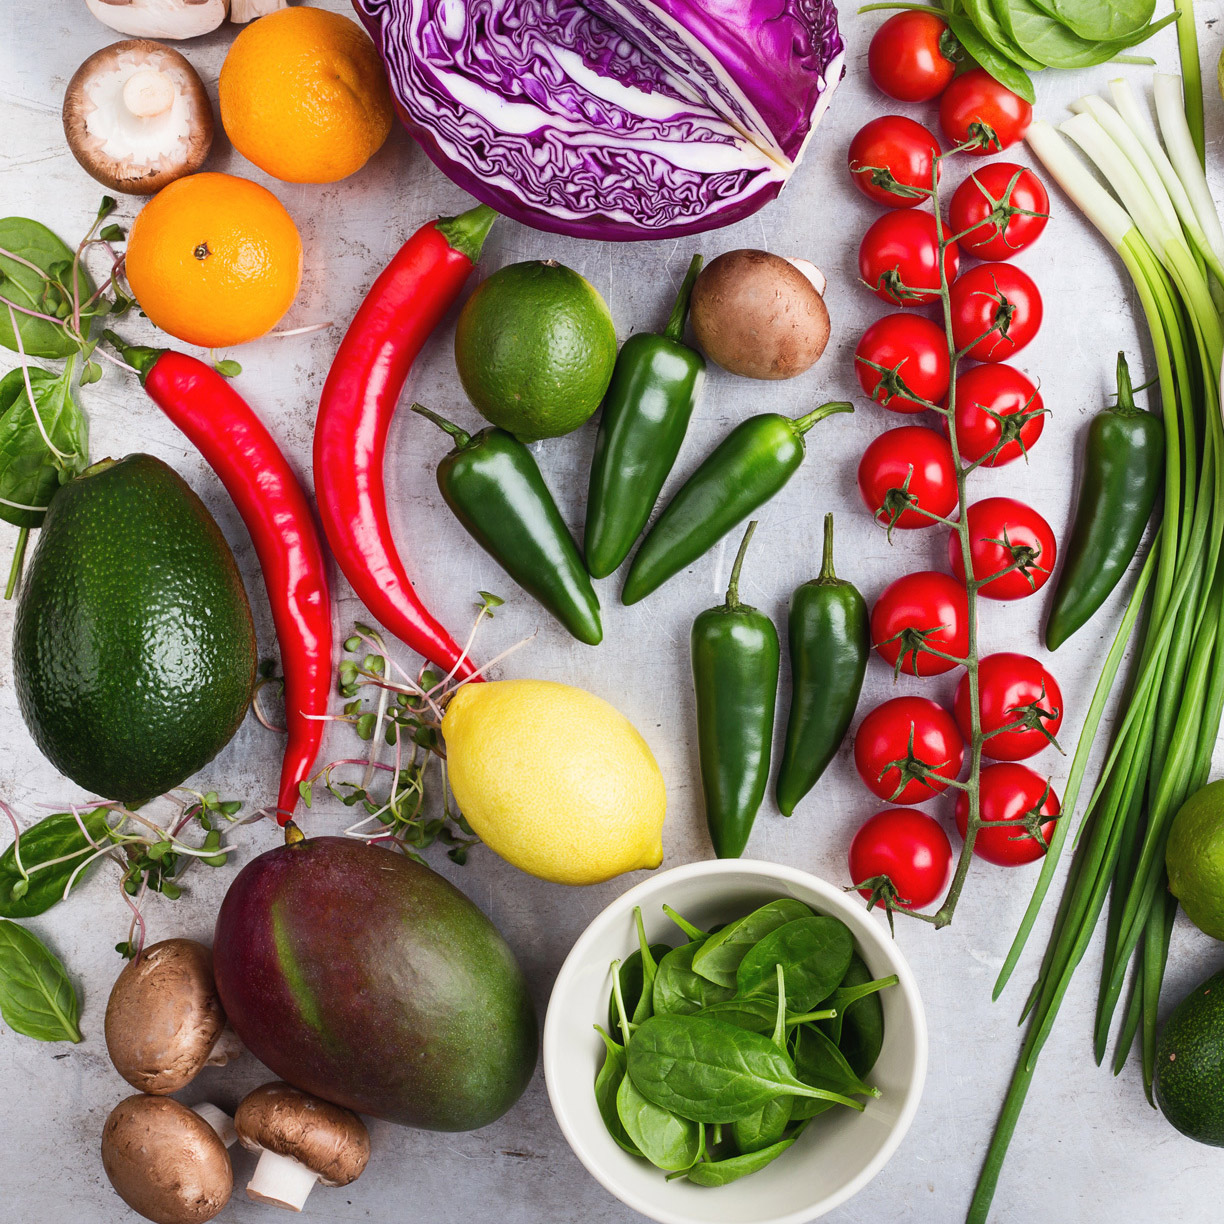 whole fruits and veggies